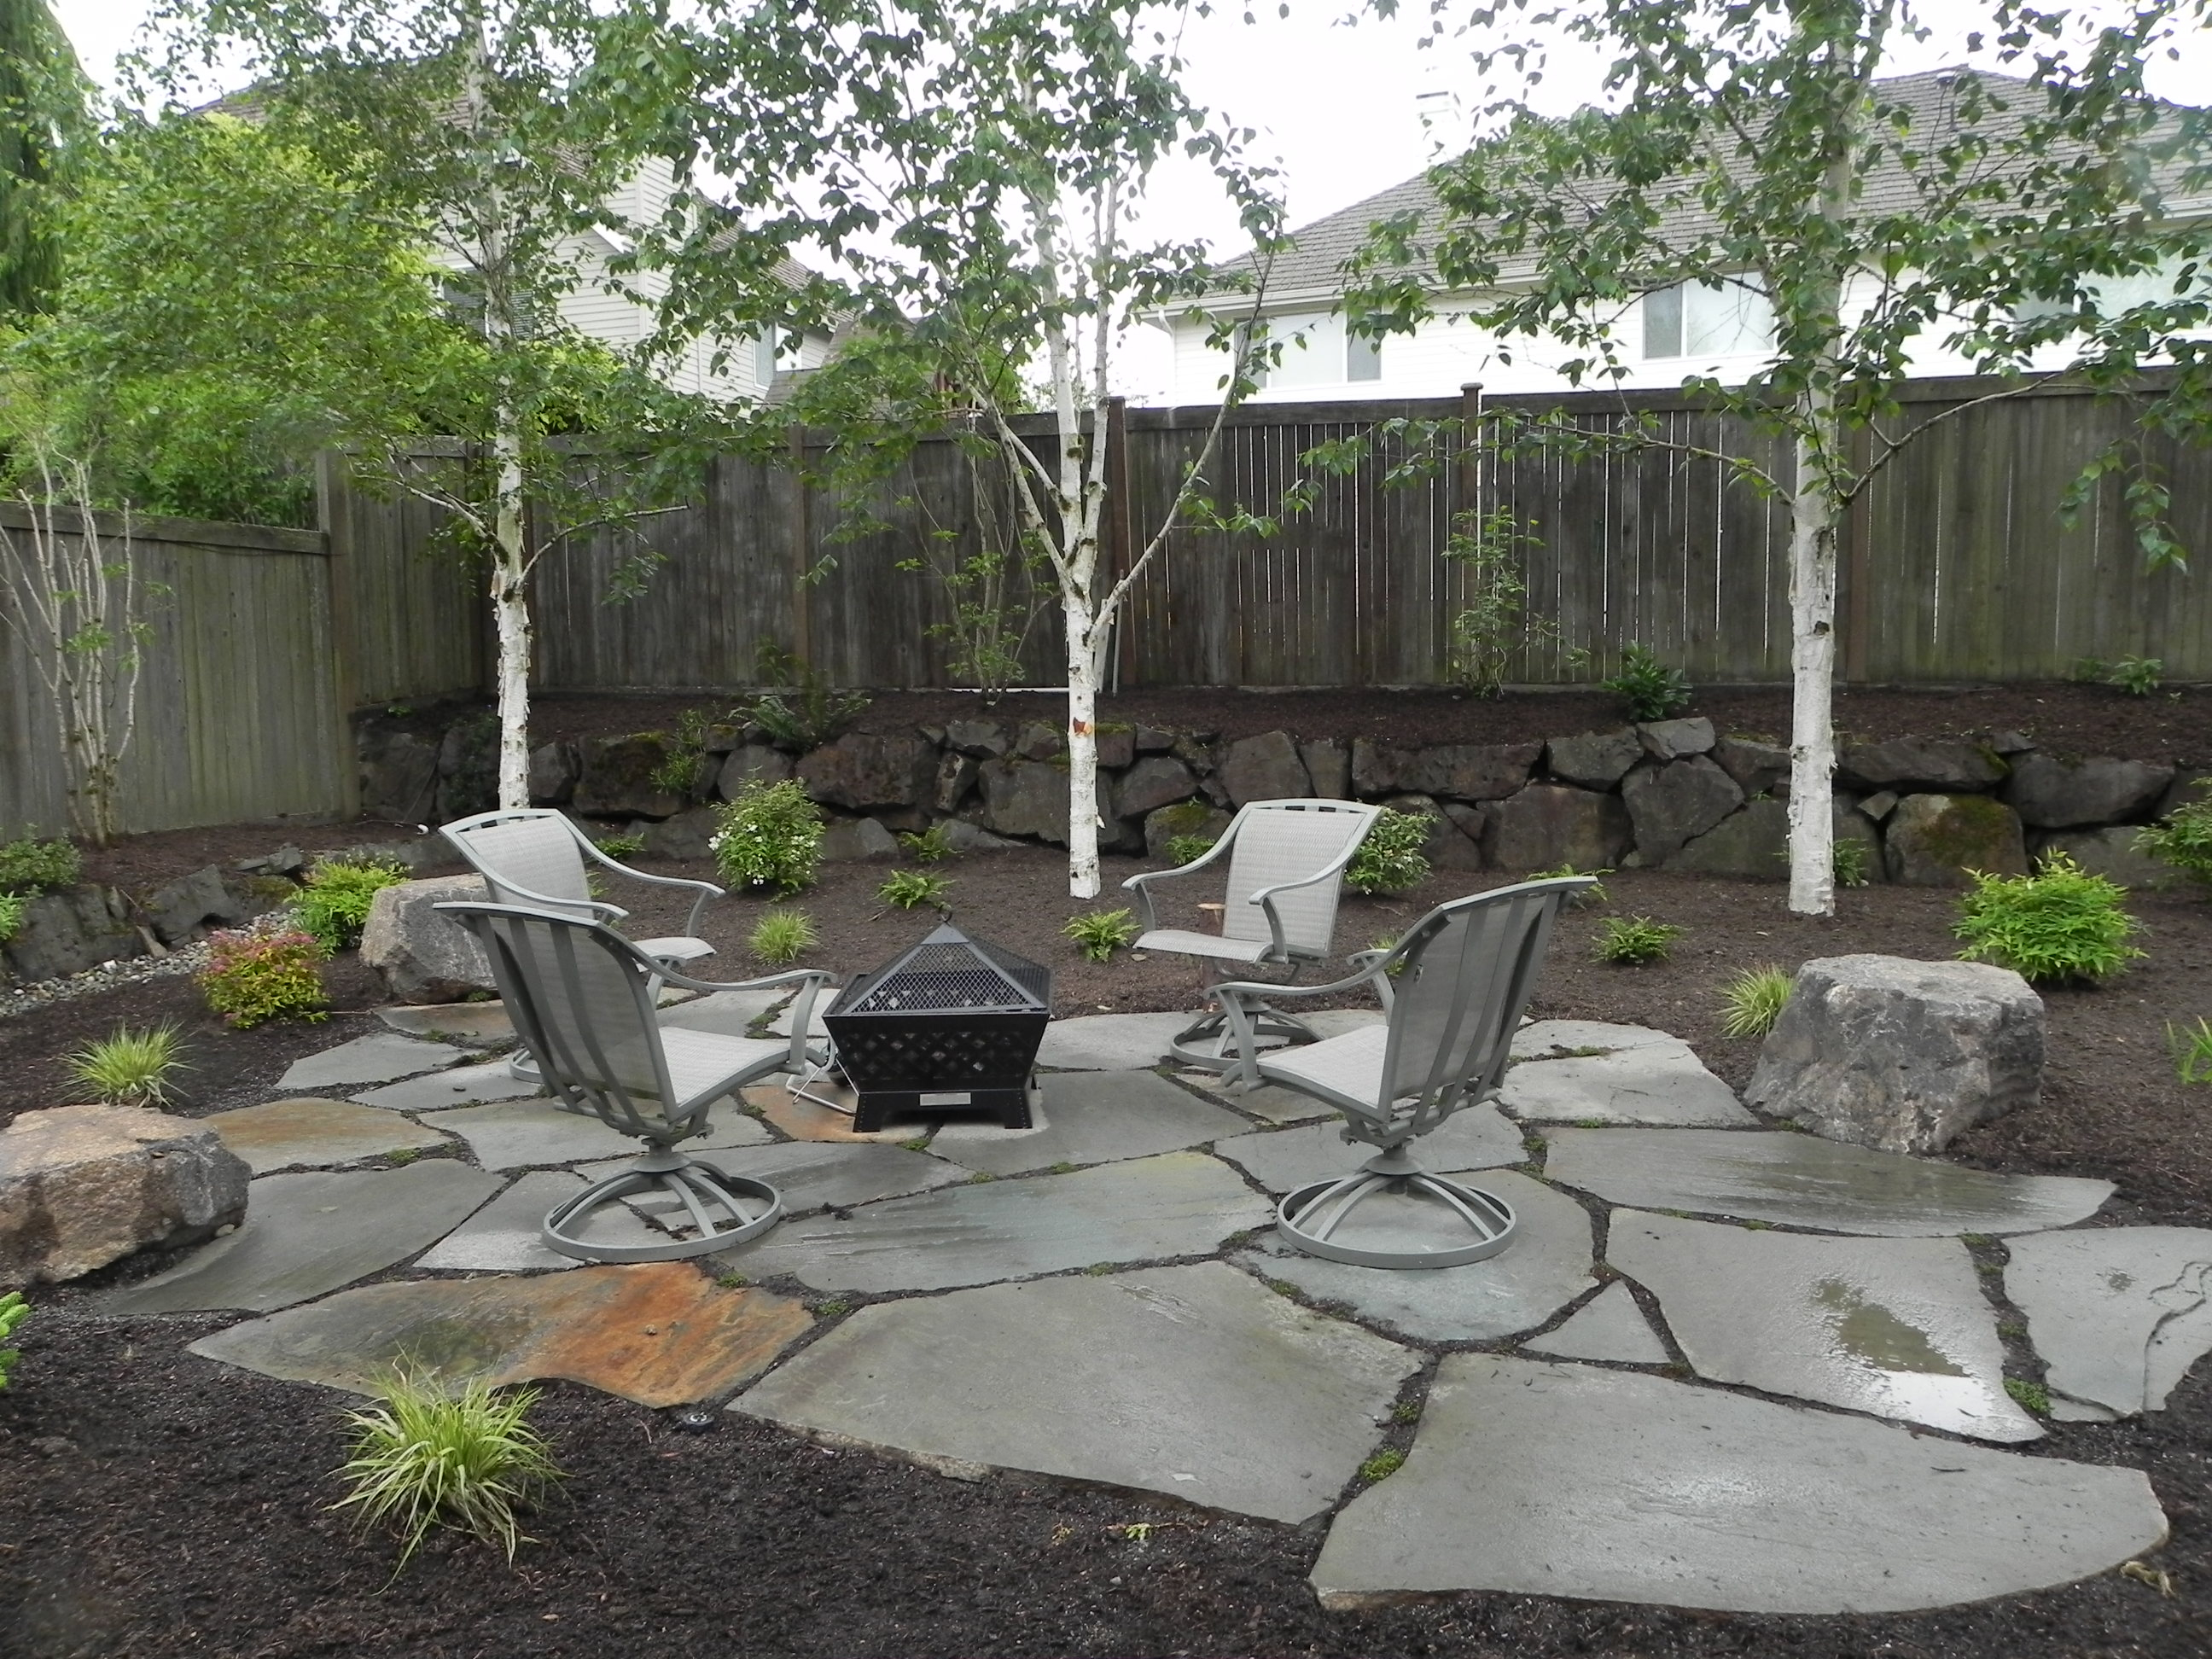 Inspirational Fire Pit Landscape Ideas Backyard Patios And Pits throughout 14 Smart Tricks of How to Craft Backyard Fire Pit Landscaping Ideas